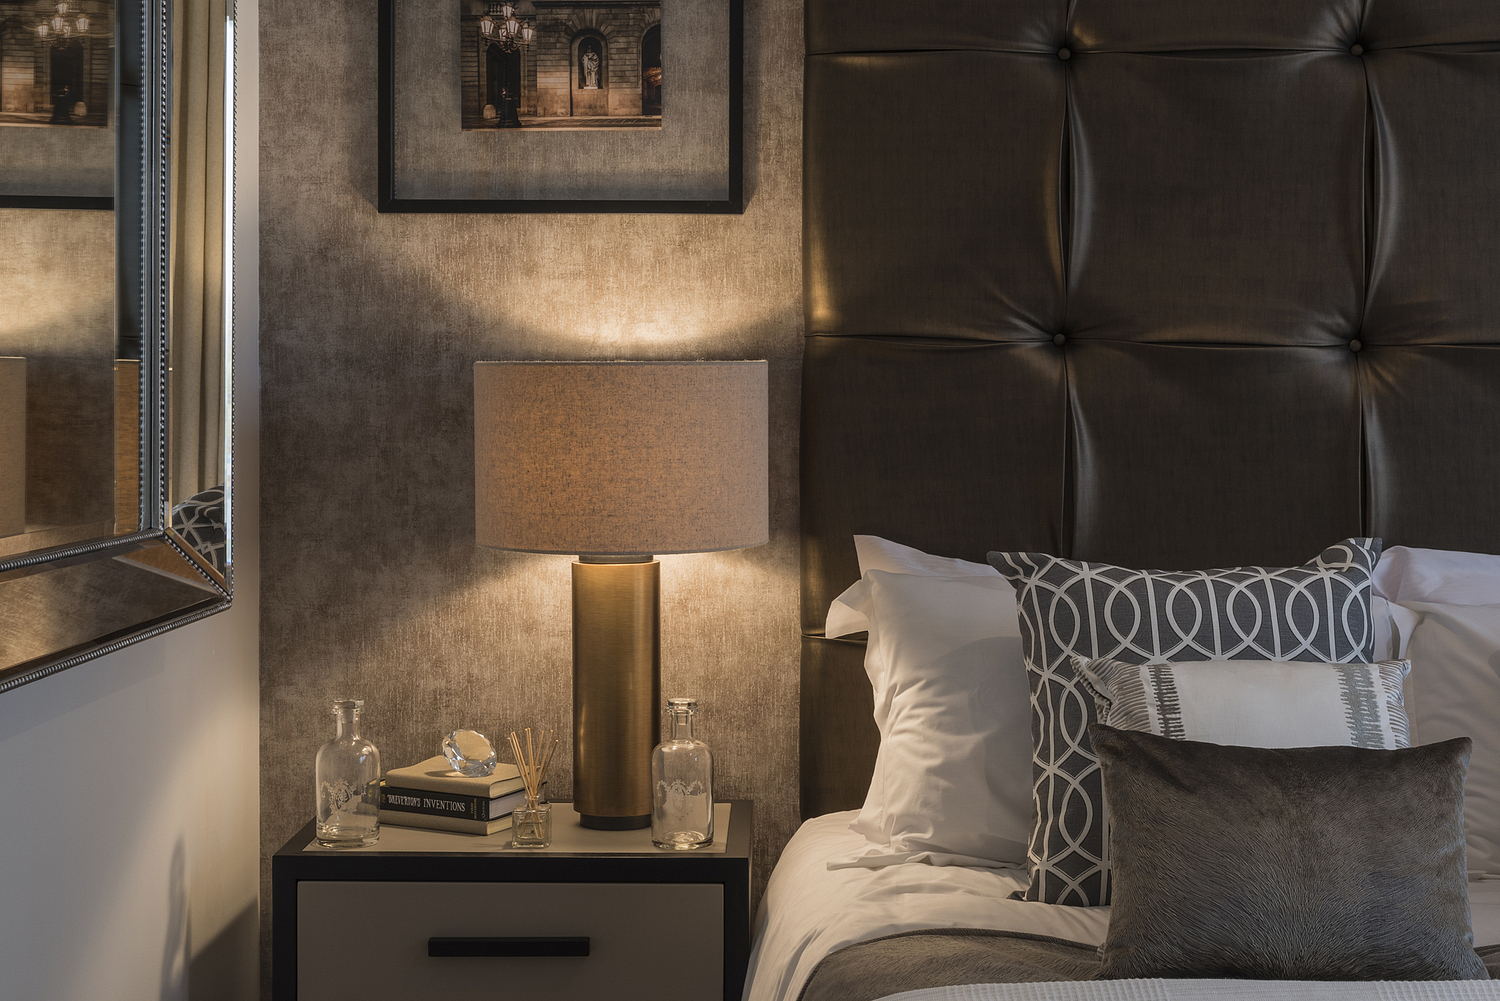 Showhome bedroom detail, London